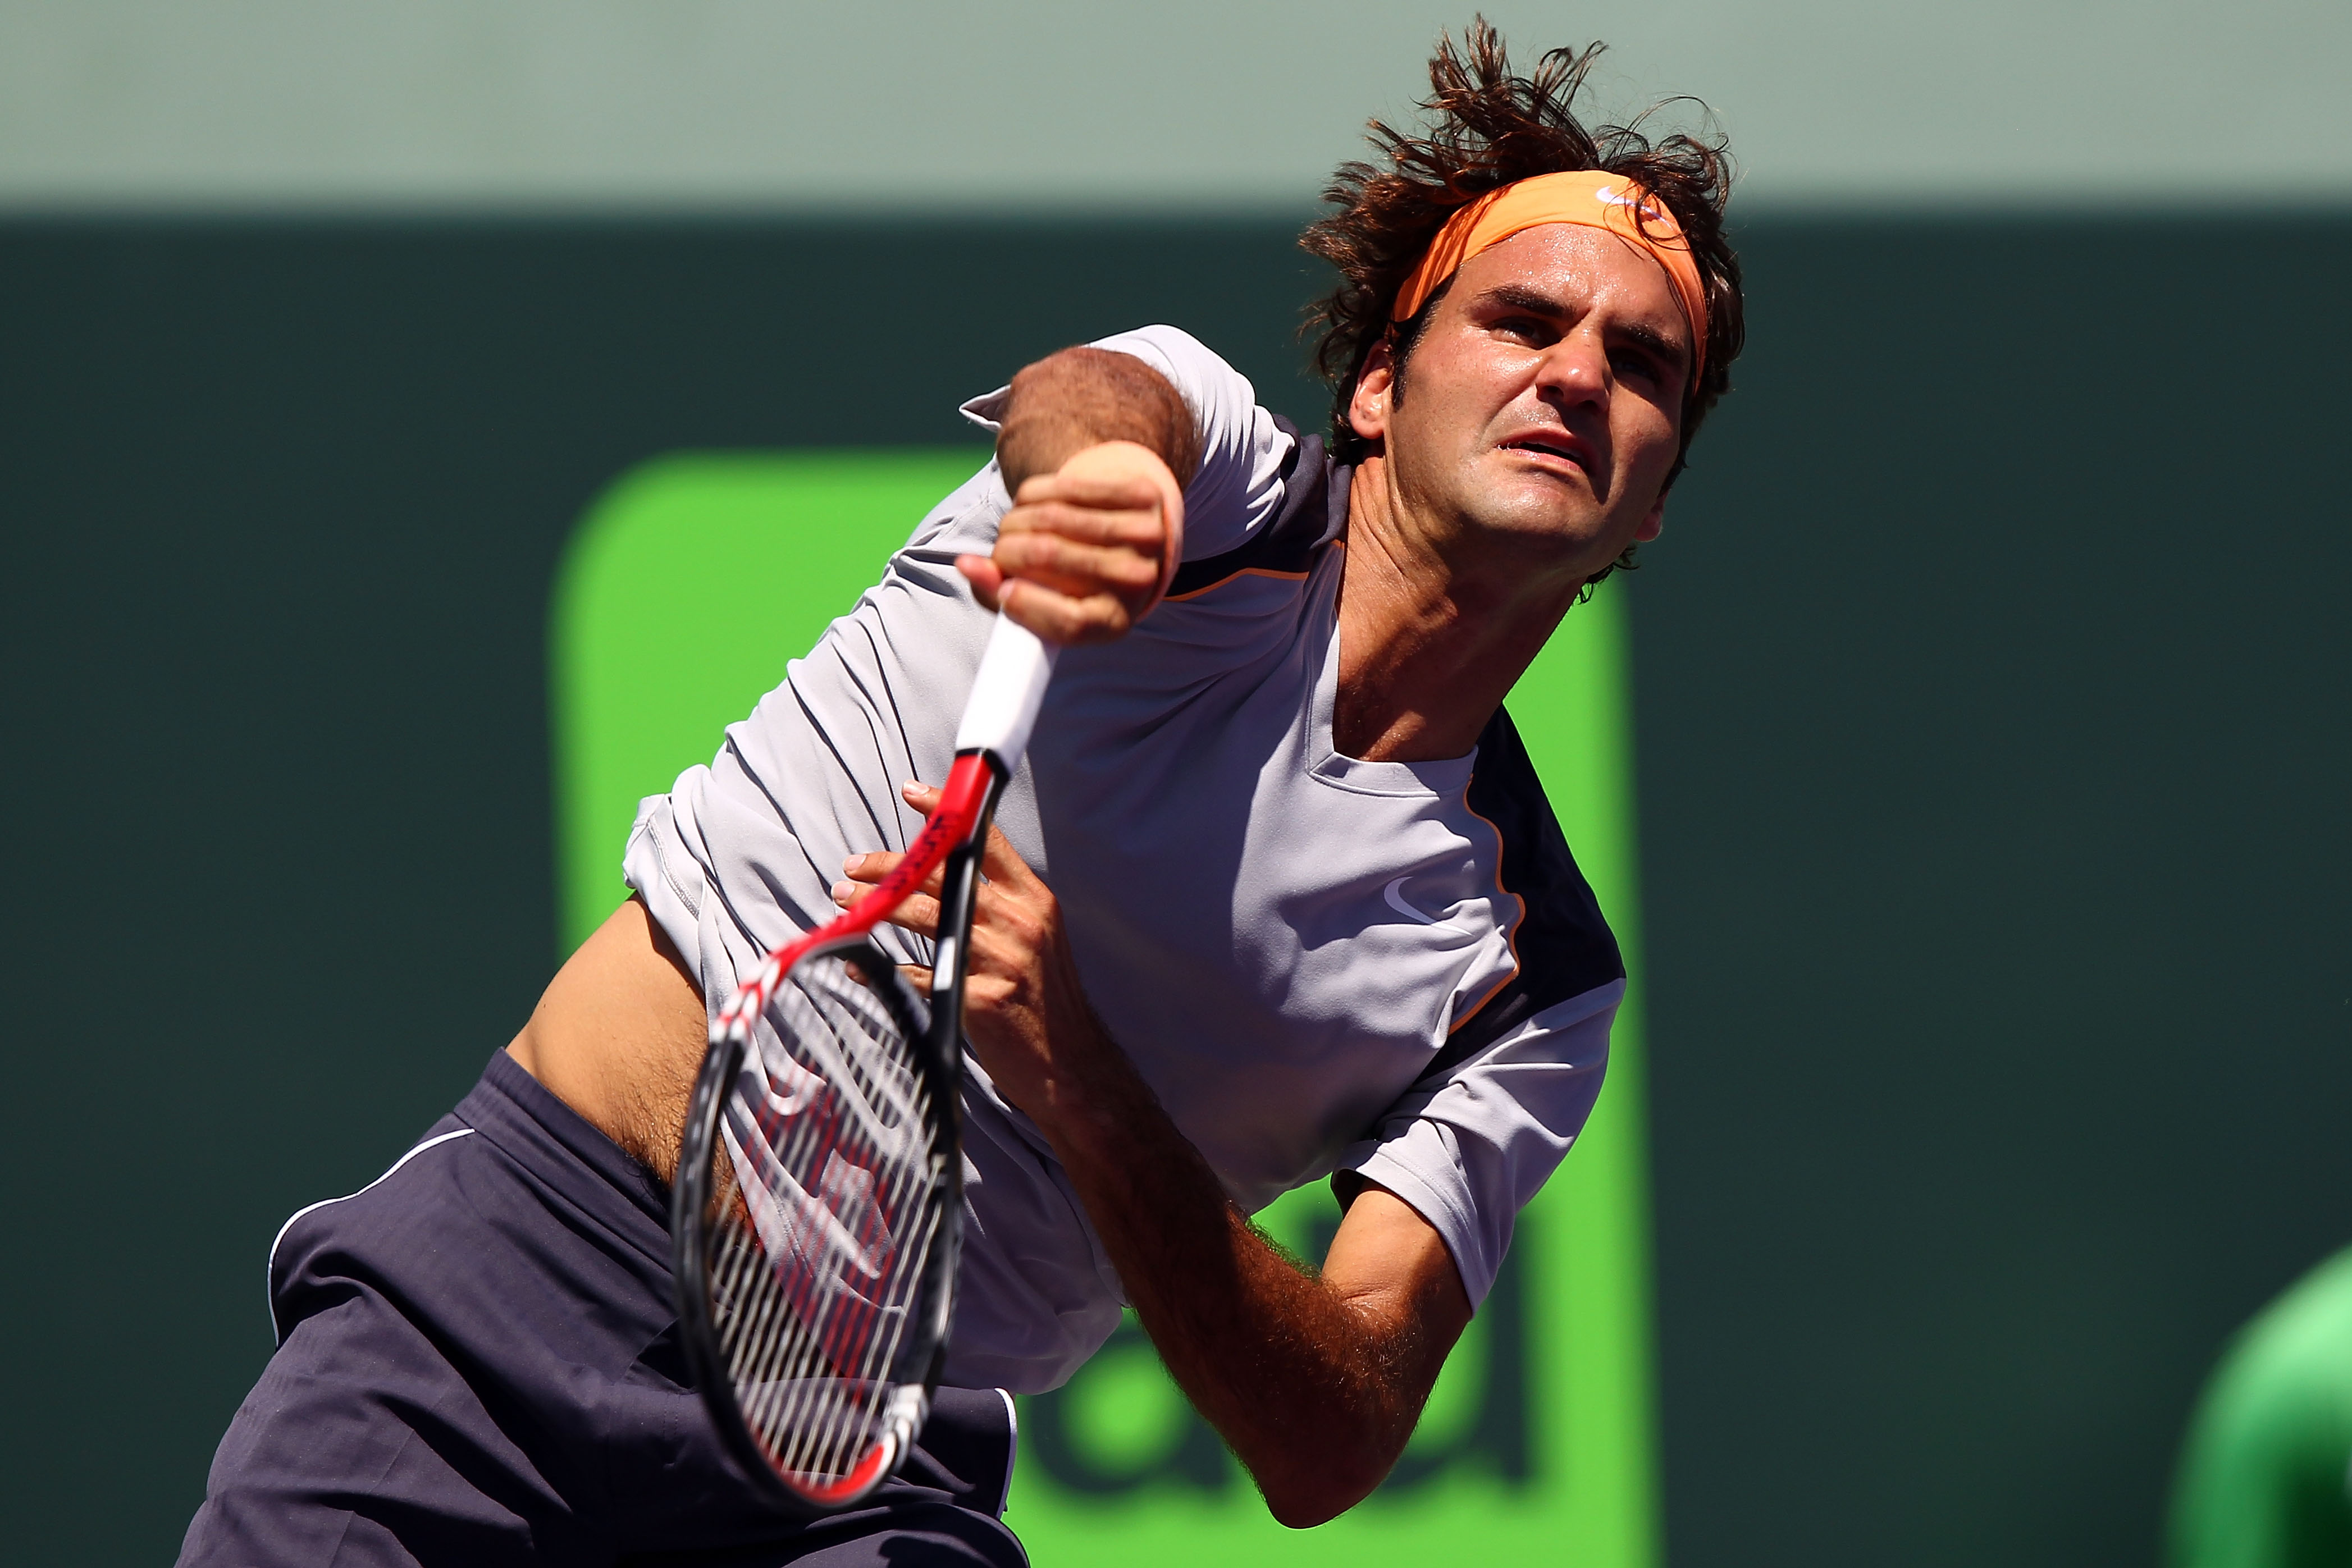 KEY BISCAYNE, FL - MARCH 26:  Roger Federer of Switzerland serves against Radek Stepanek of Czech Republic during the Sony Ericsson Open at Crandon Park Tennis Center on March 26, 2011 in Key Biscayne, Florida.  (Photo by Clive Brunskill/Getty Images)